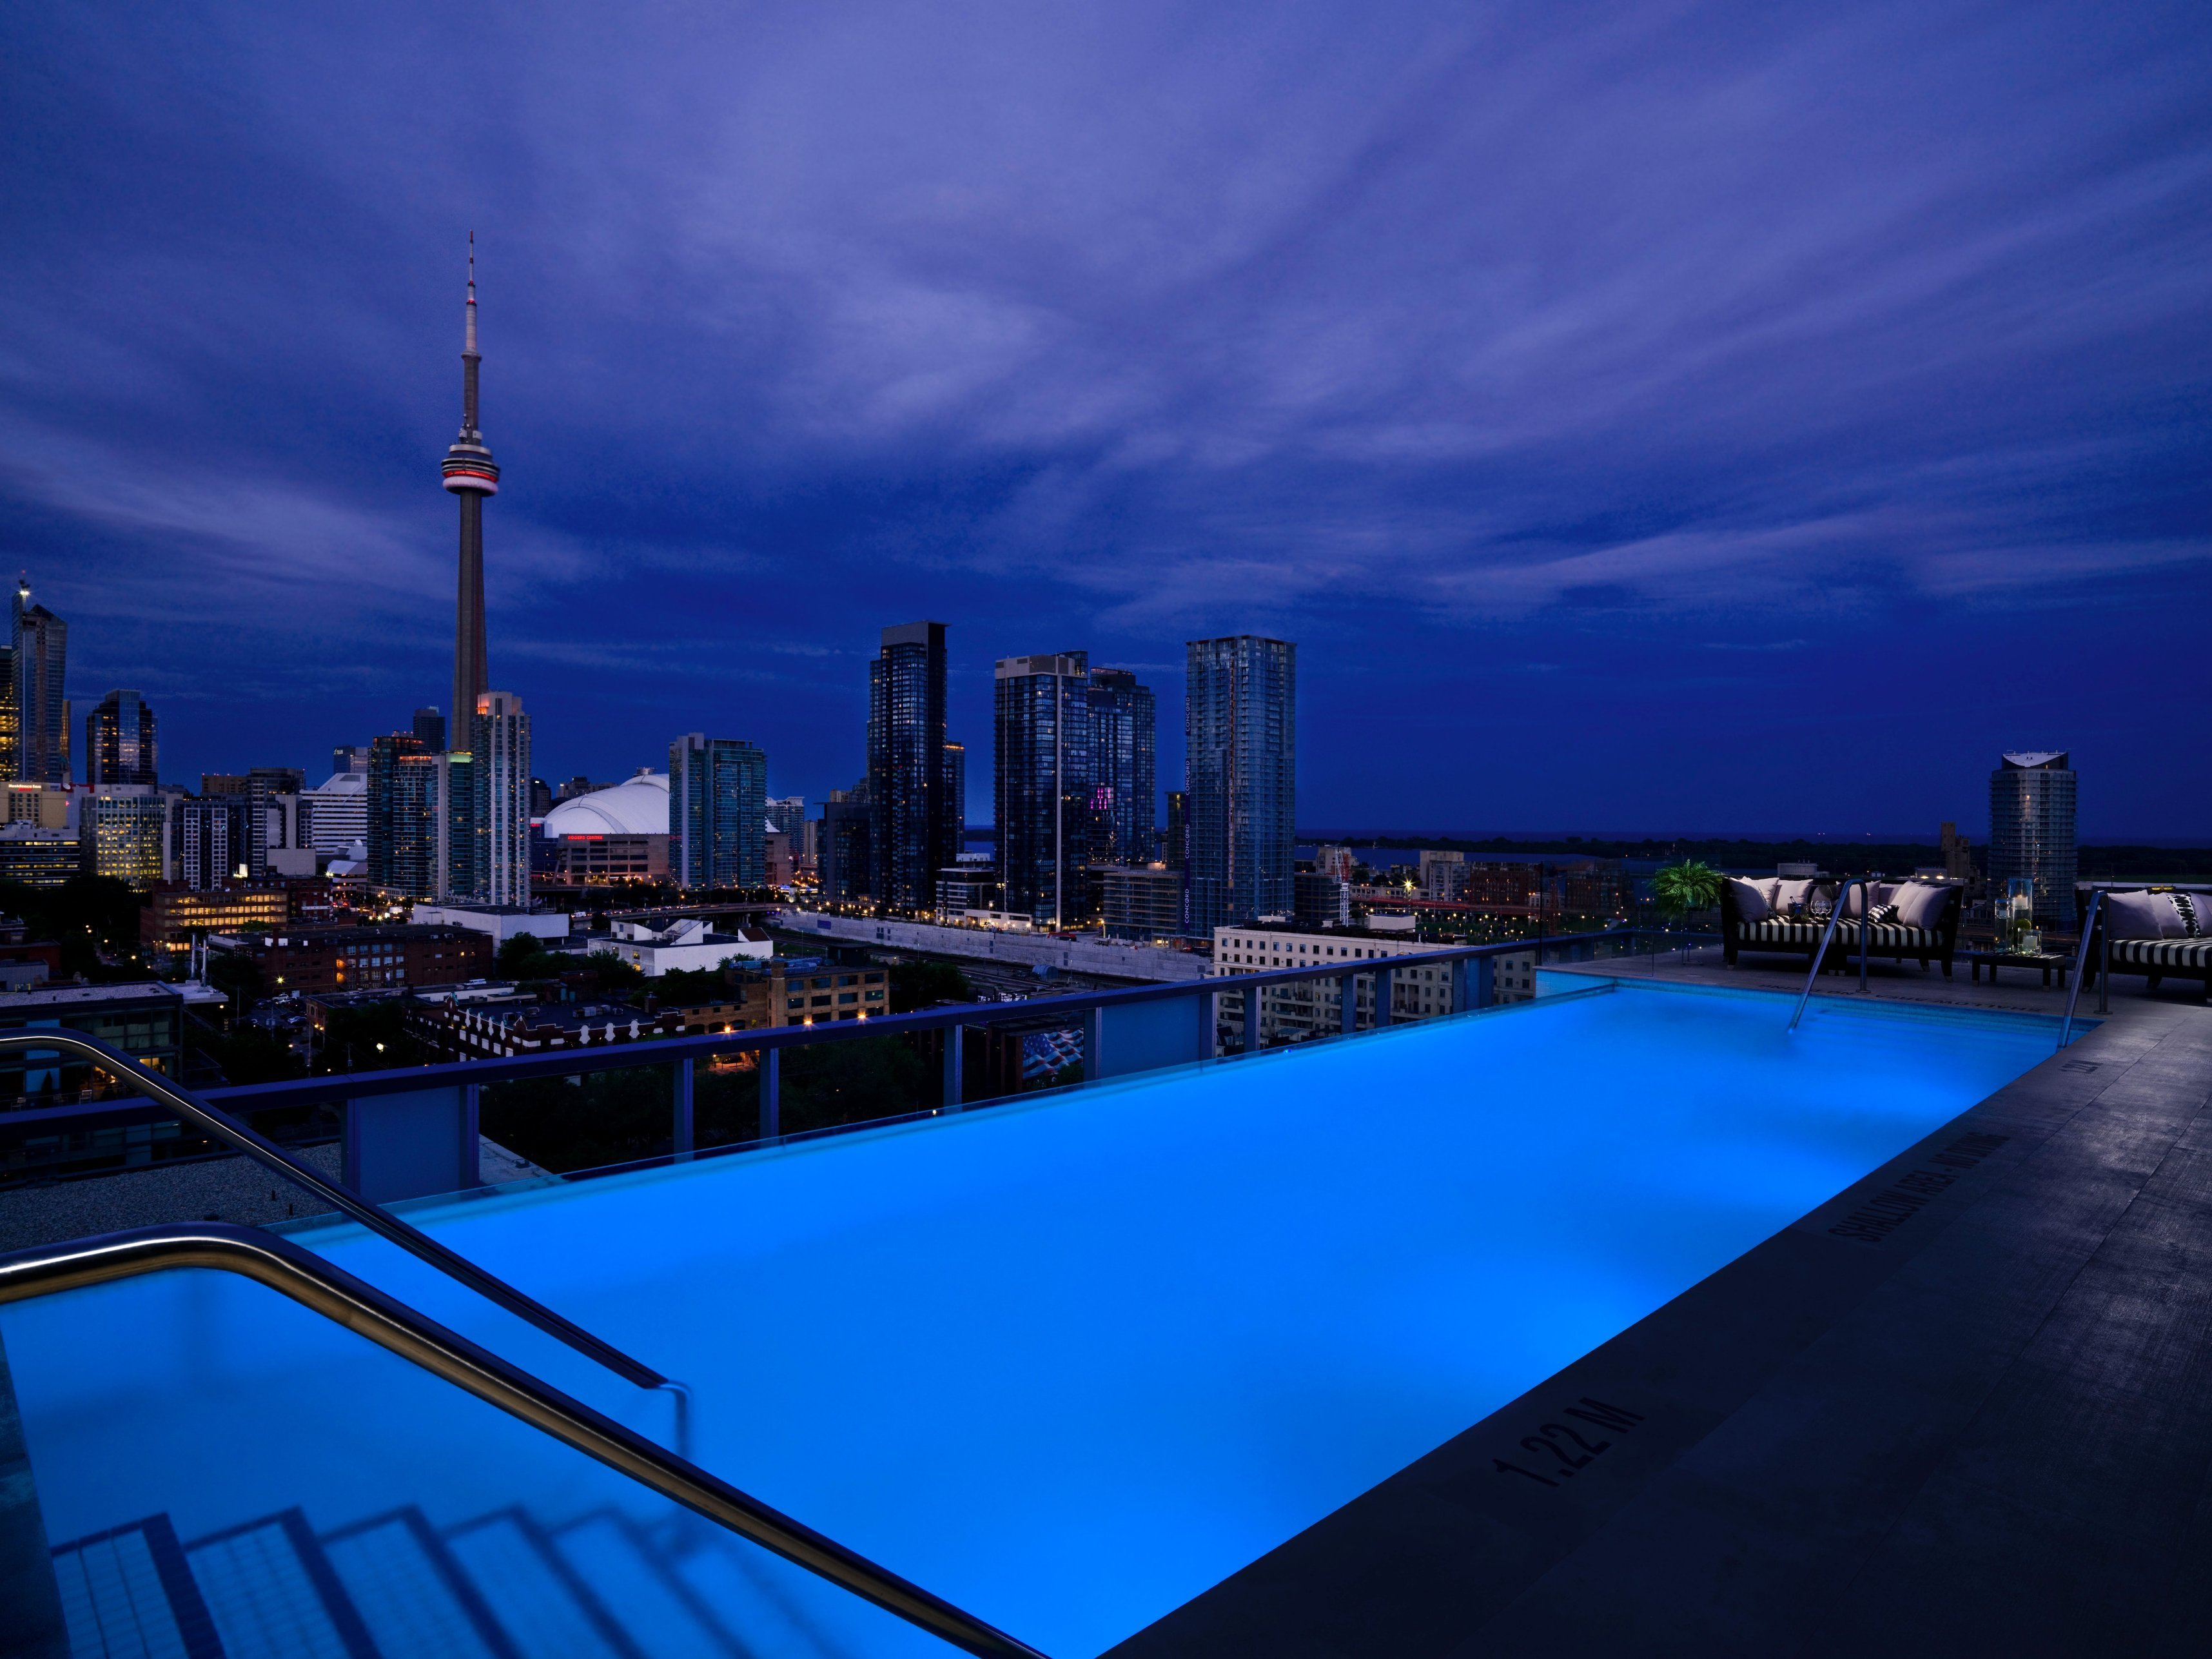 From the roof of Thompson Toronto, guests can see the landmark CN Tower.